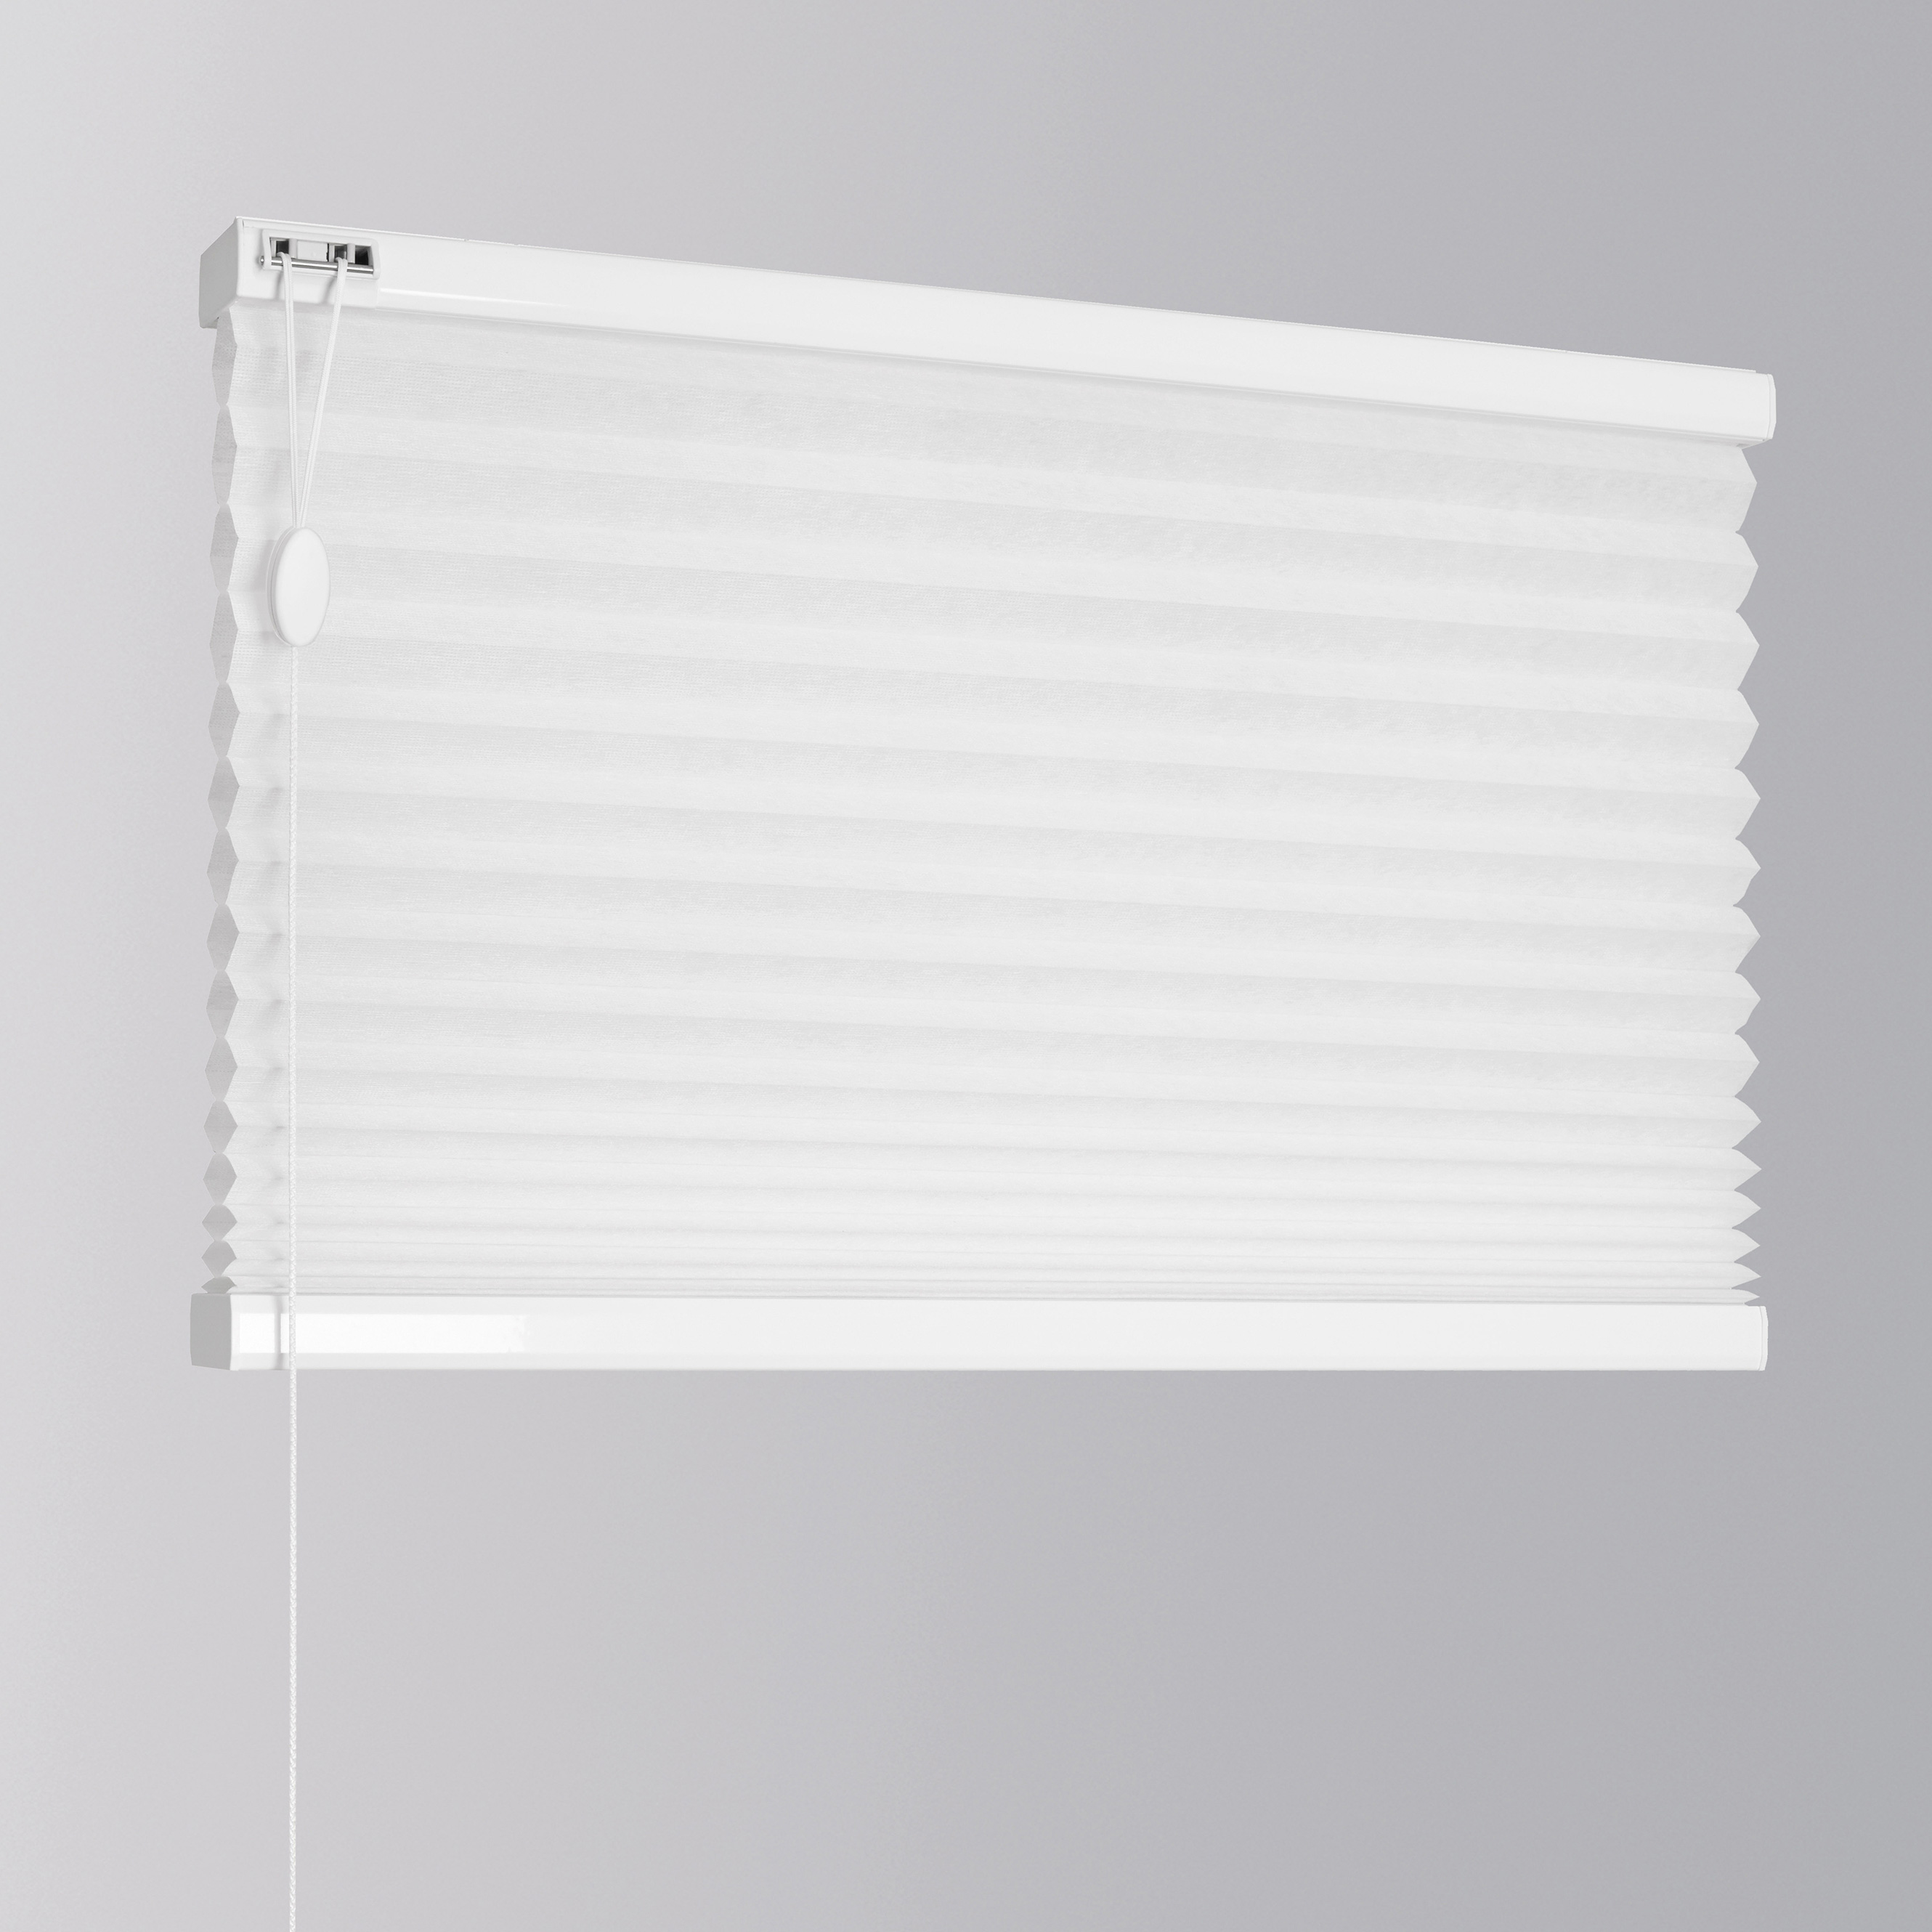 Pleated Blinds L 48 Mm Benthin Gmbh